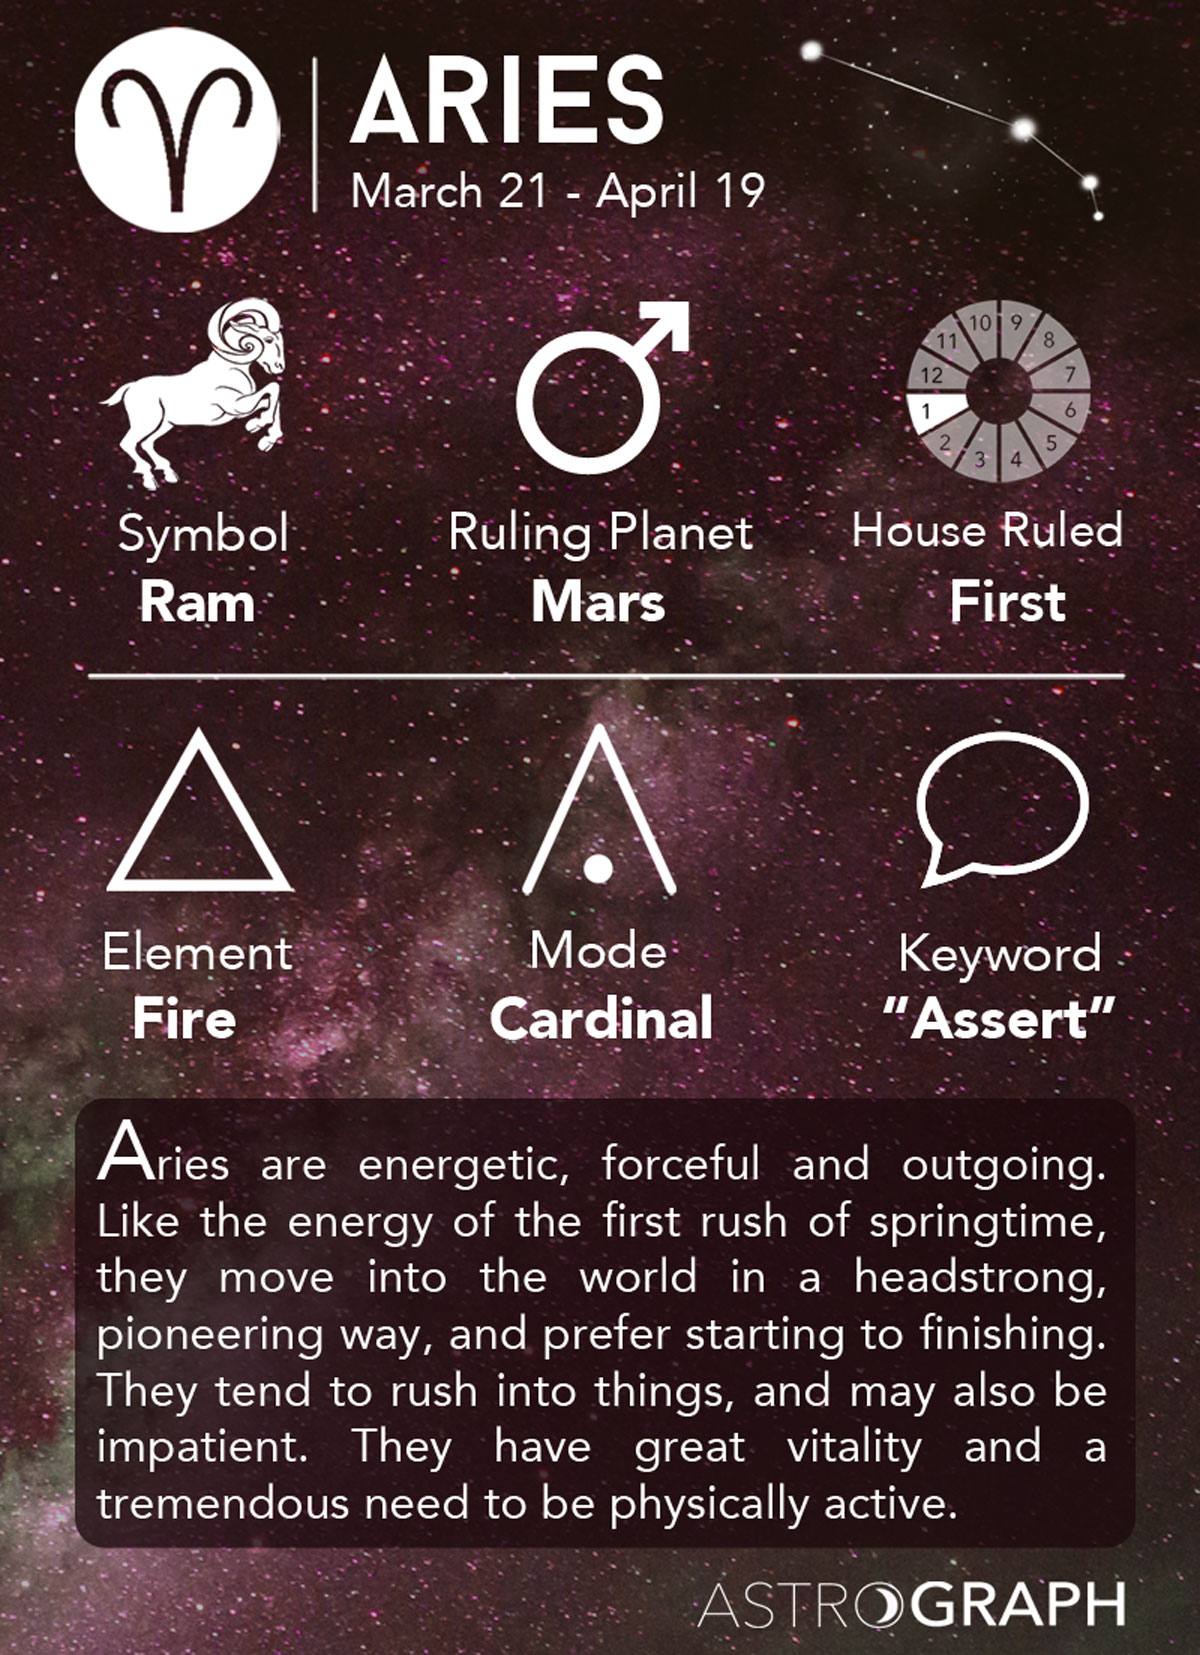 Aries Period: March 21 - April 19. Aries Mode: Cardinal Aries Element: Fire Ruling Planet of Aries: Mars House Ruled by Aries: First